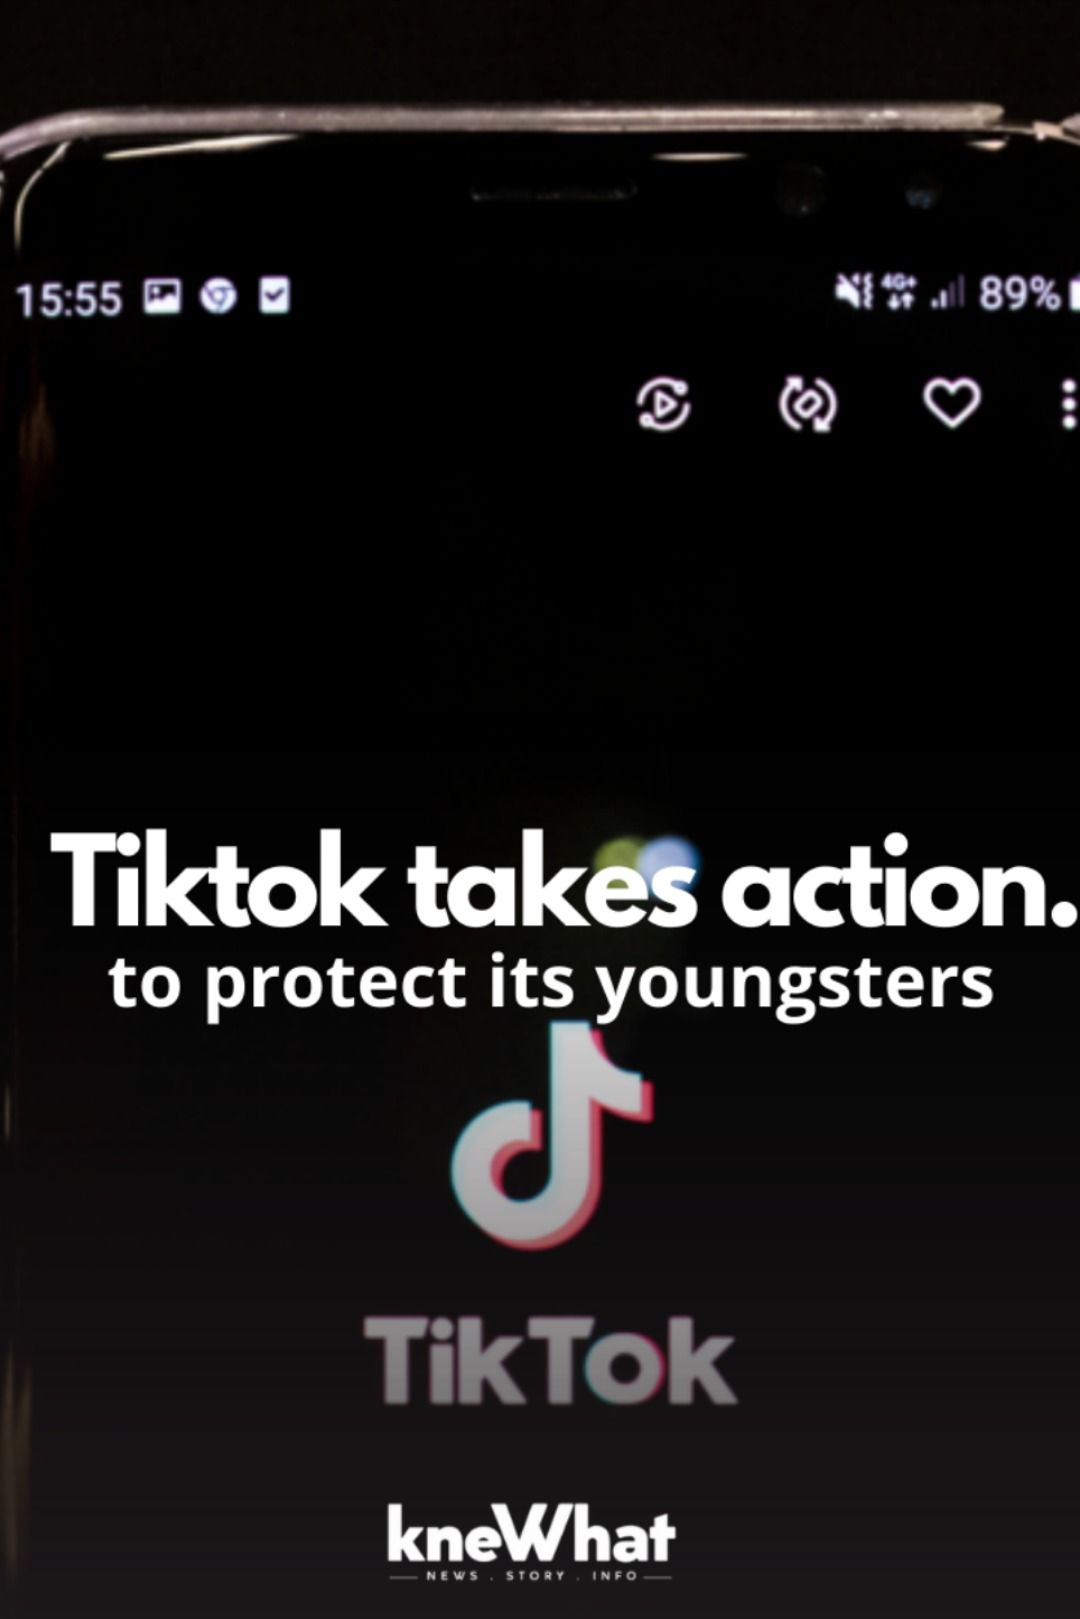 After Alerts Tiktok Takes Action To Protect Its Youngest Users In 2021 Take Action Users Tech Innovation